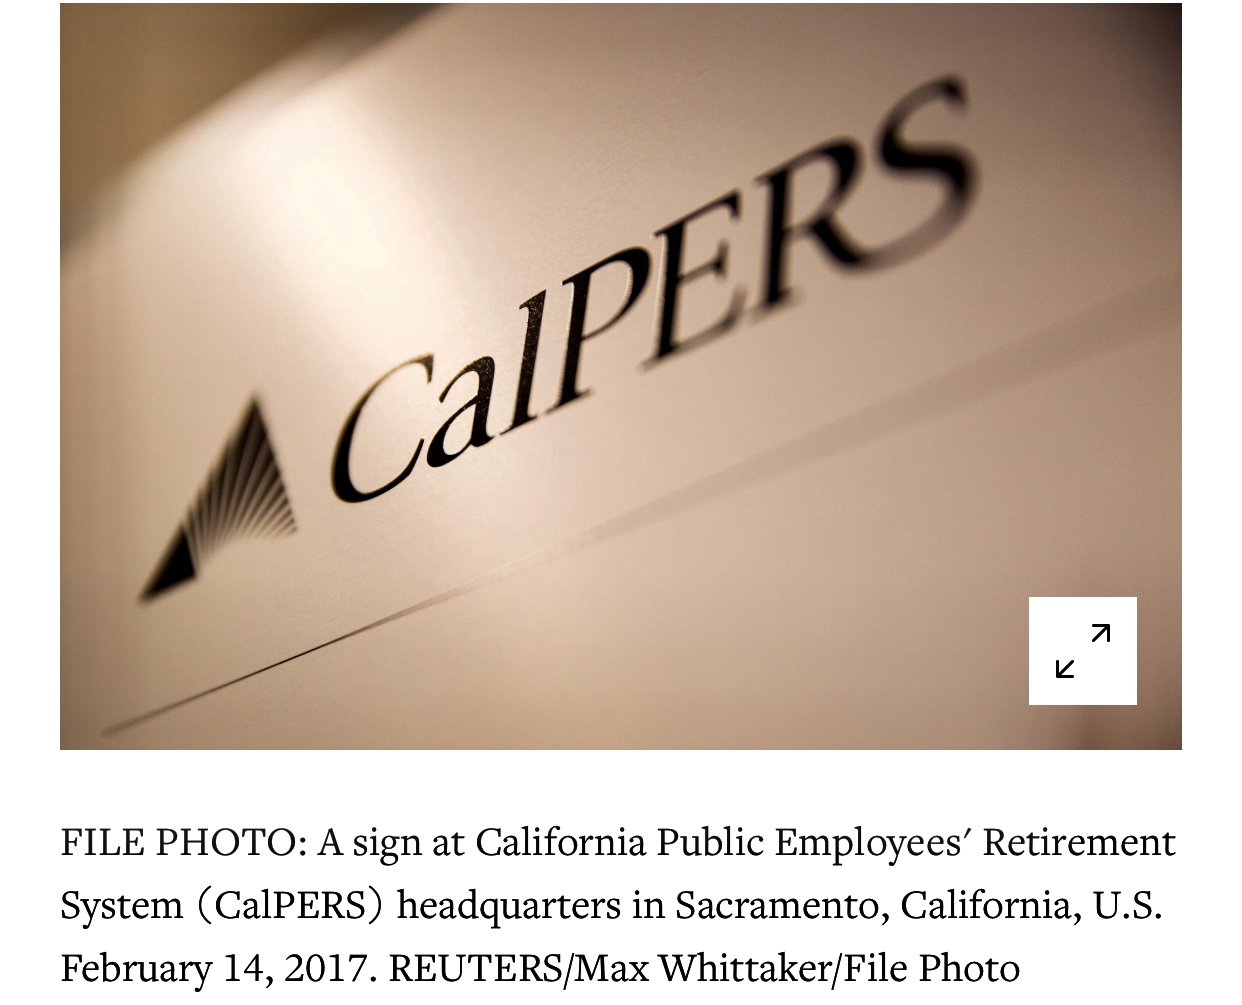 U.S. Lawmaker Calls For Ouster of CalPERS CIO Over China Ties